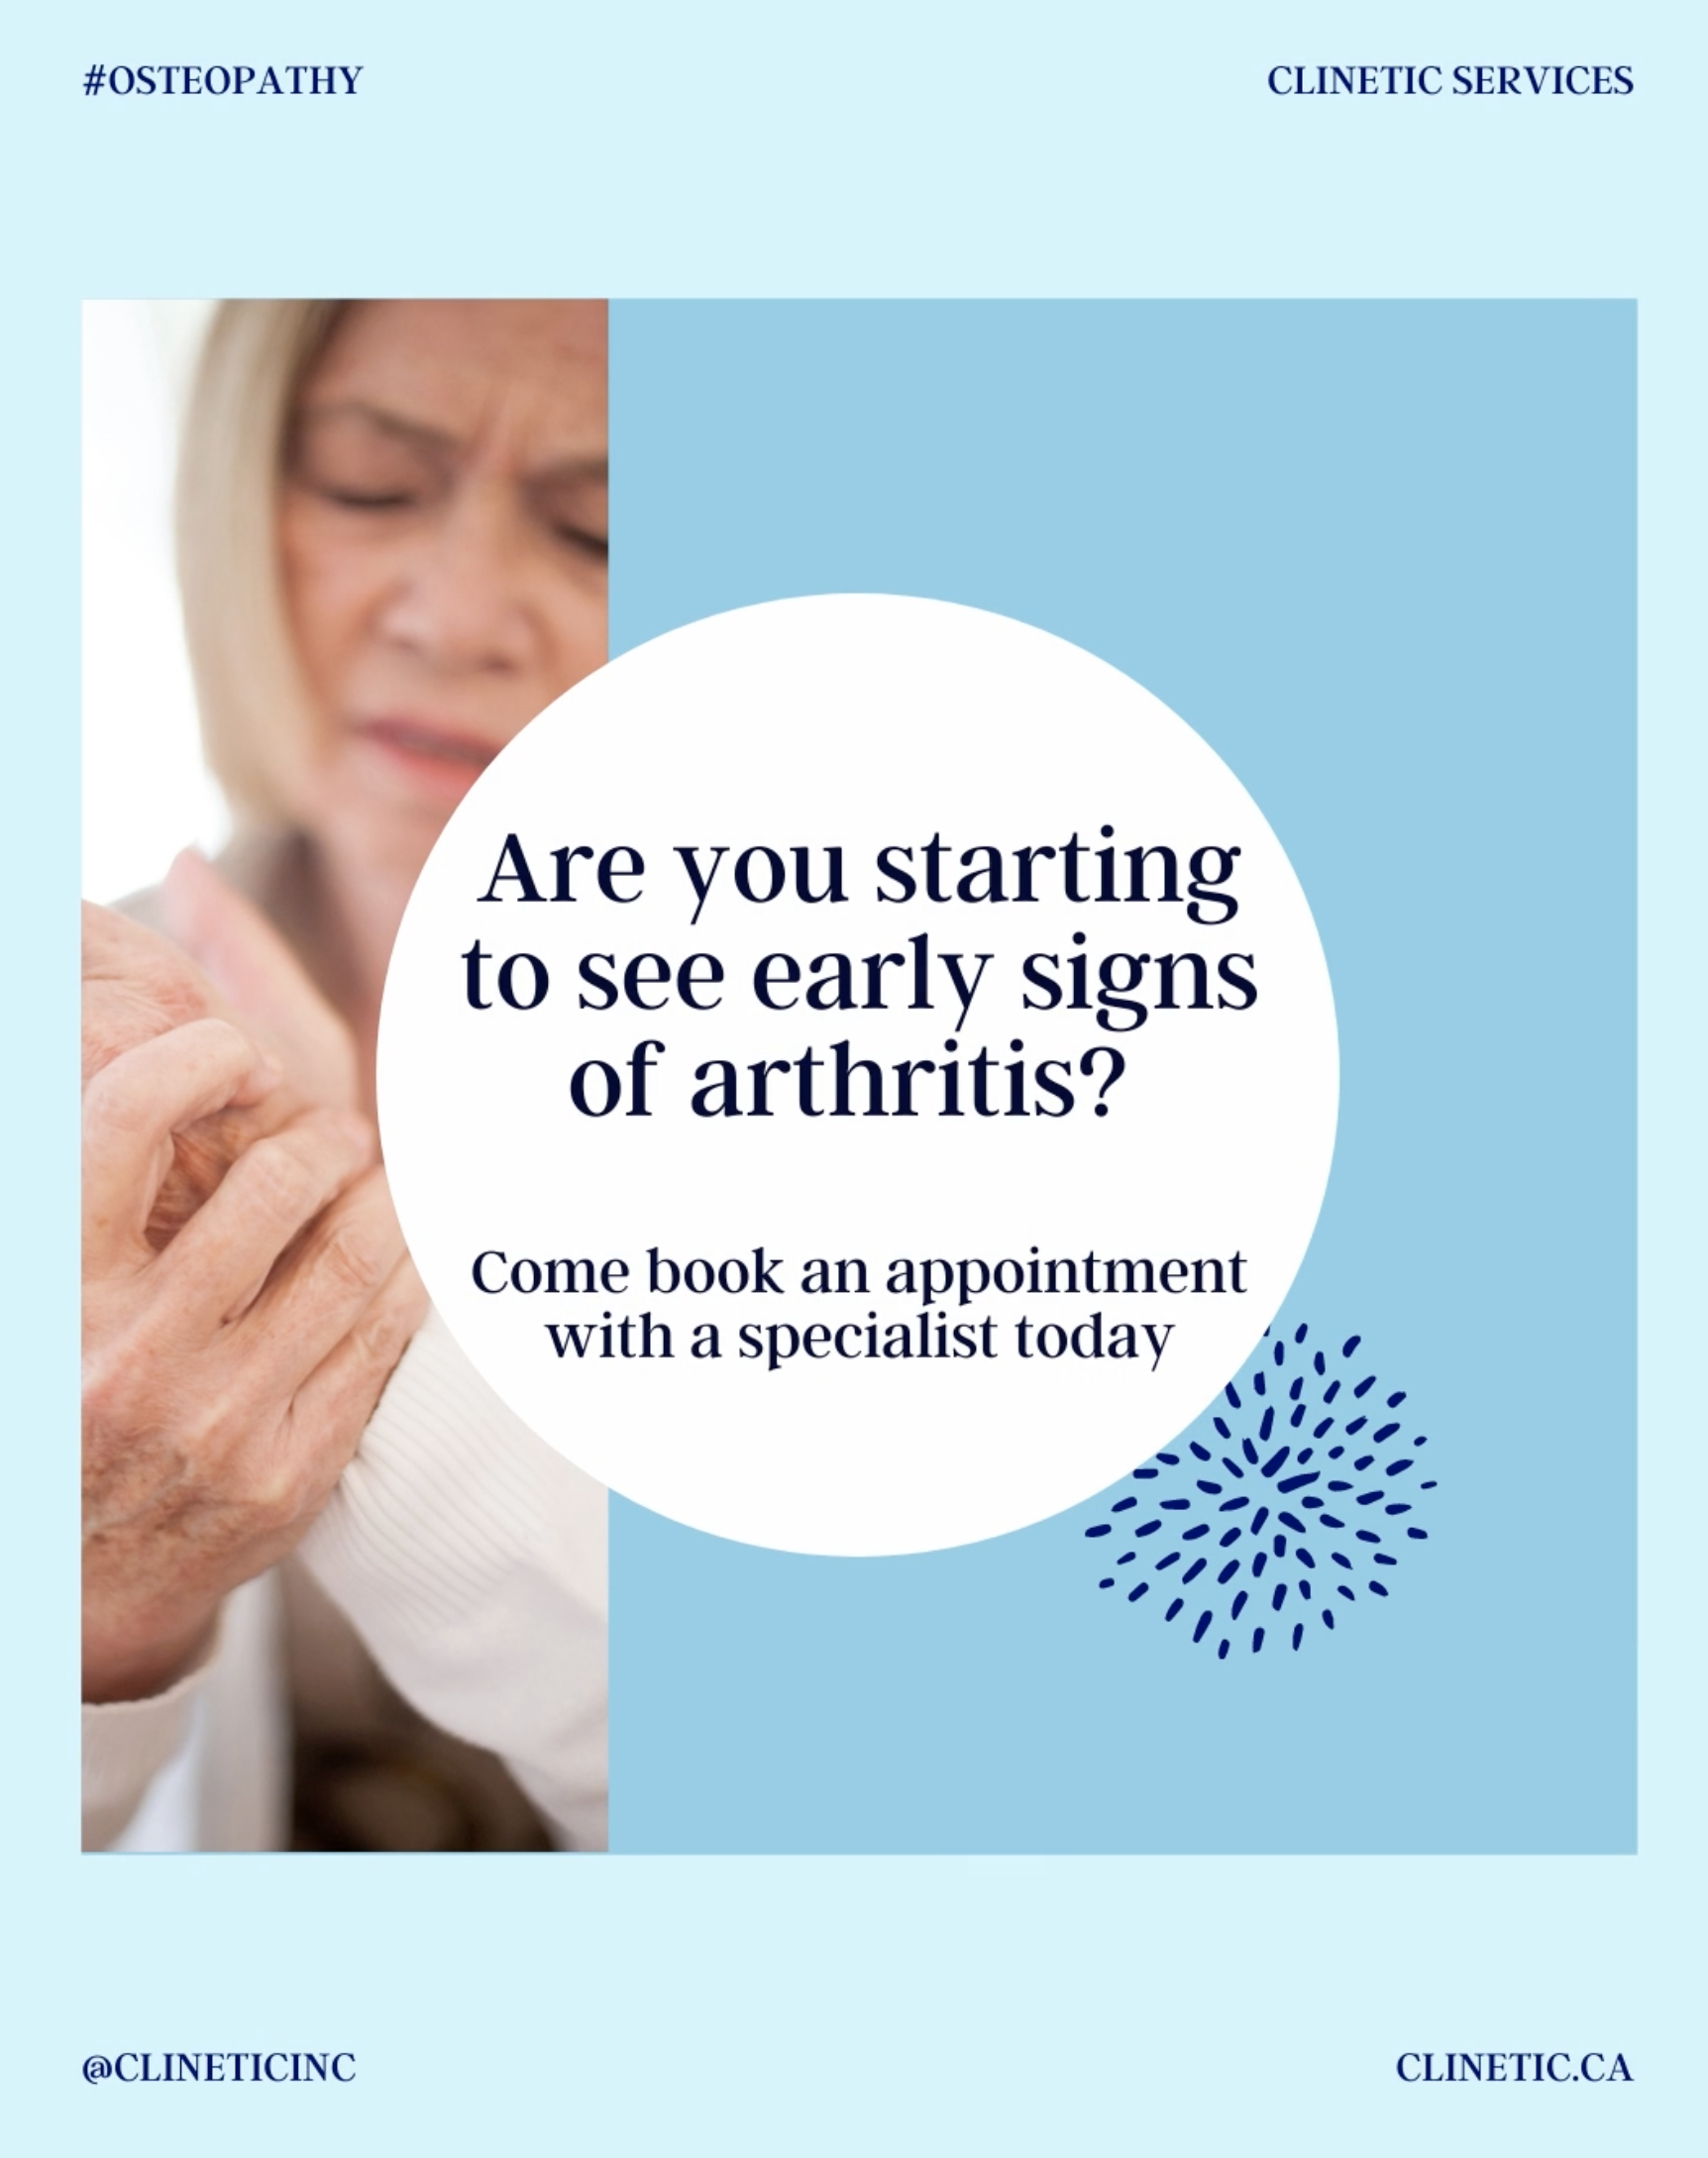 Are you starting to see early signs of arthritis?